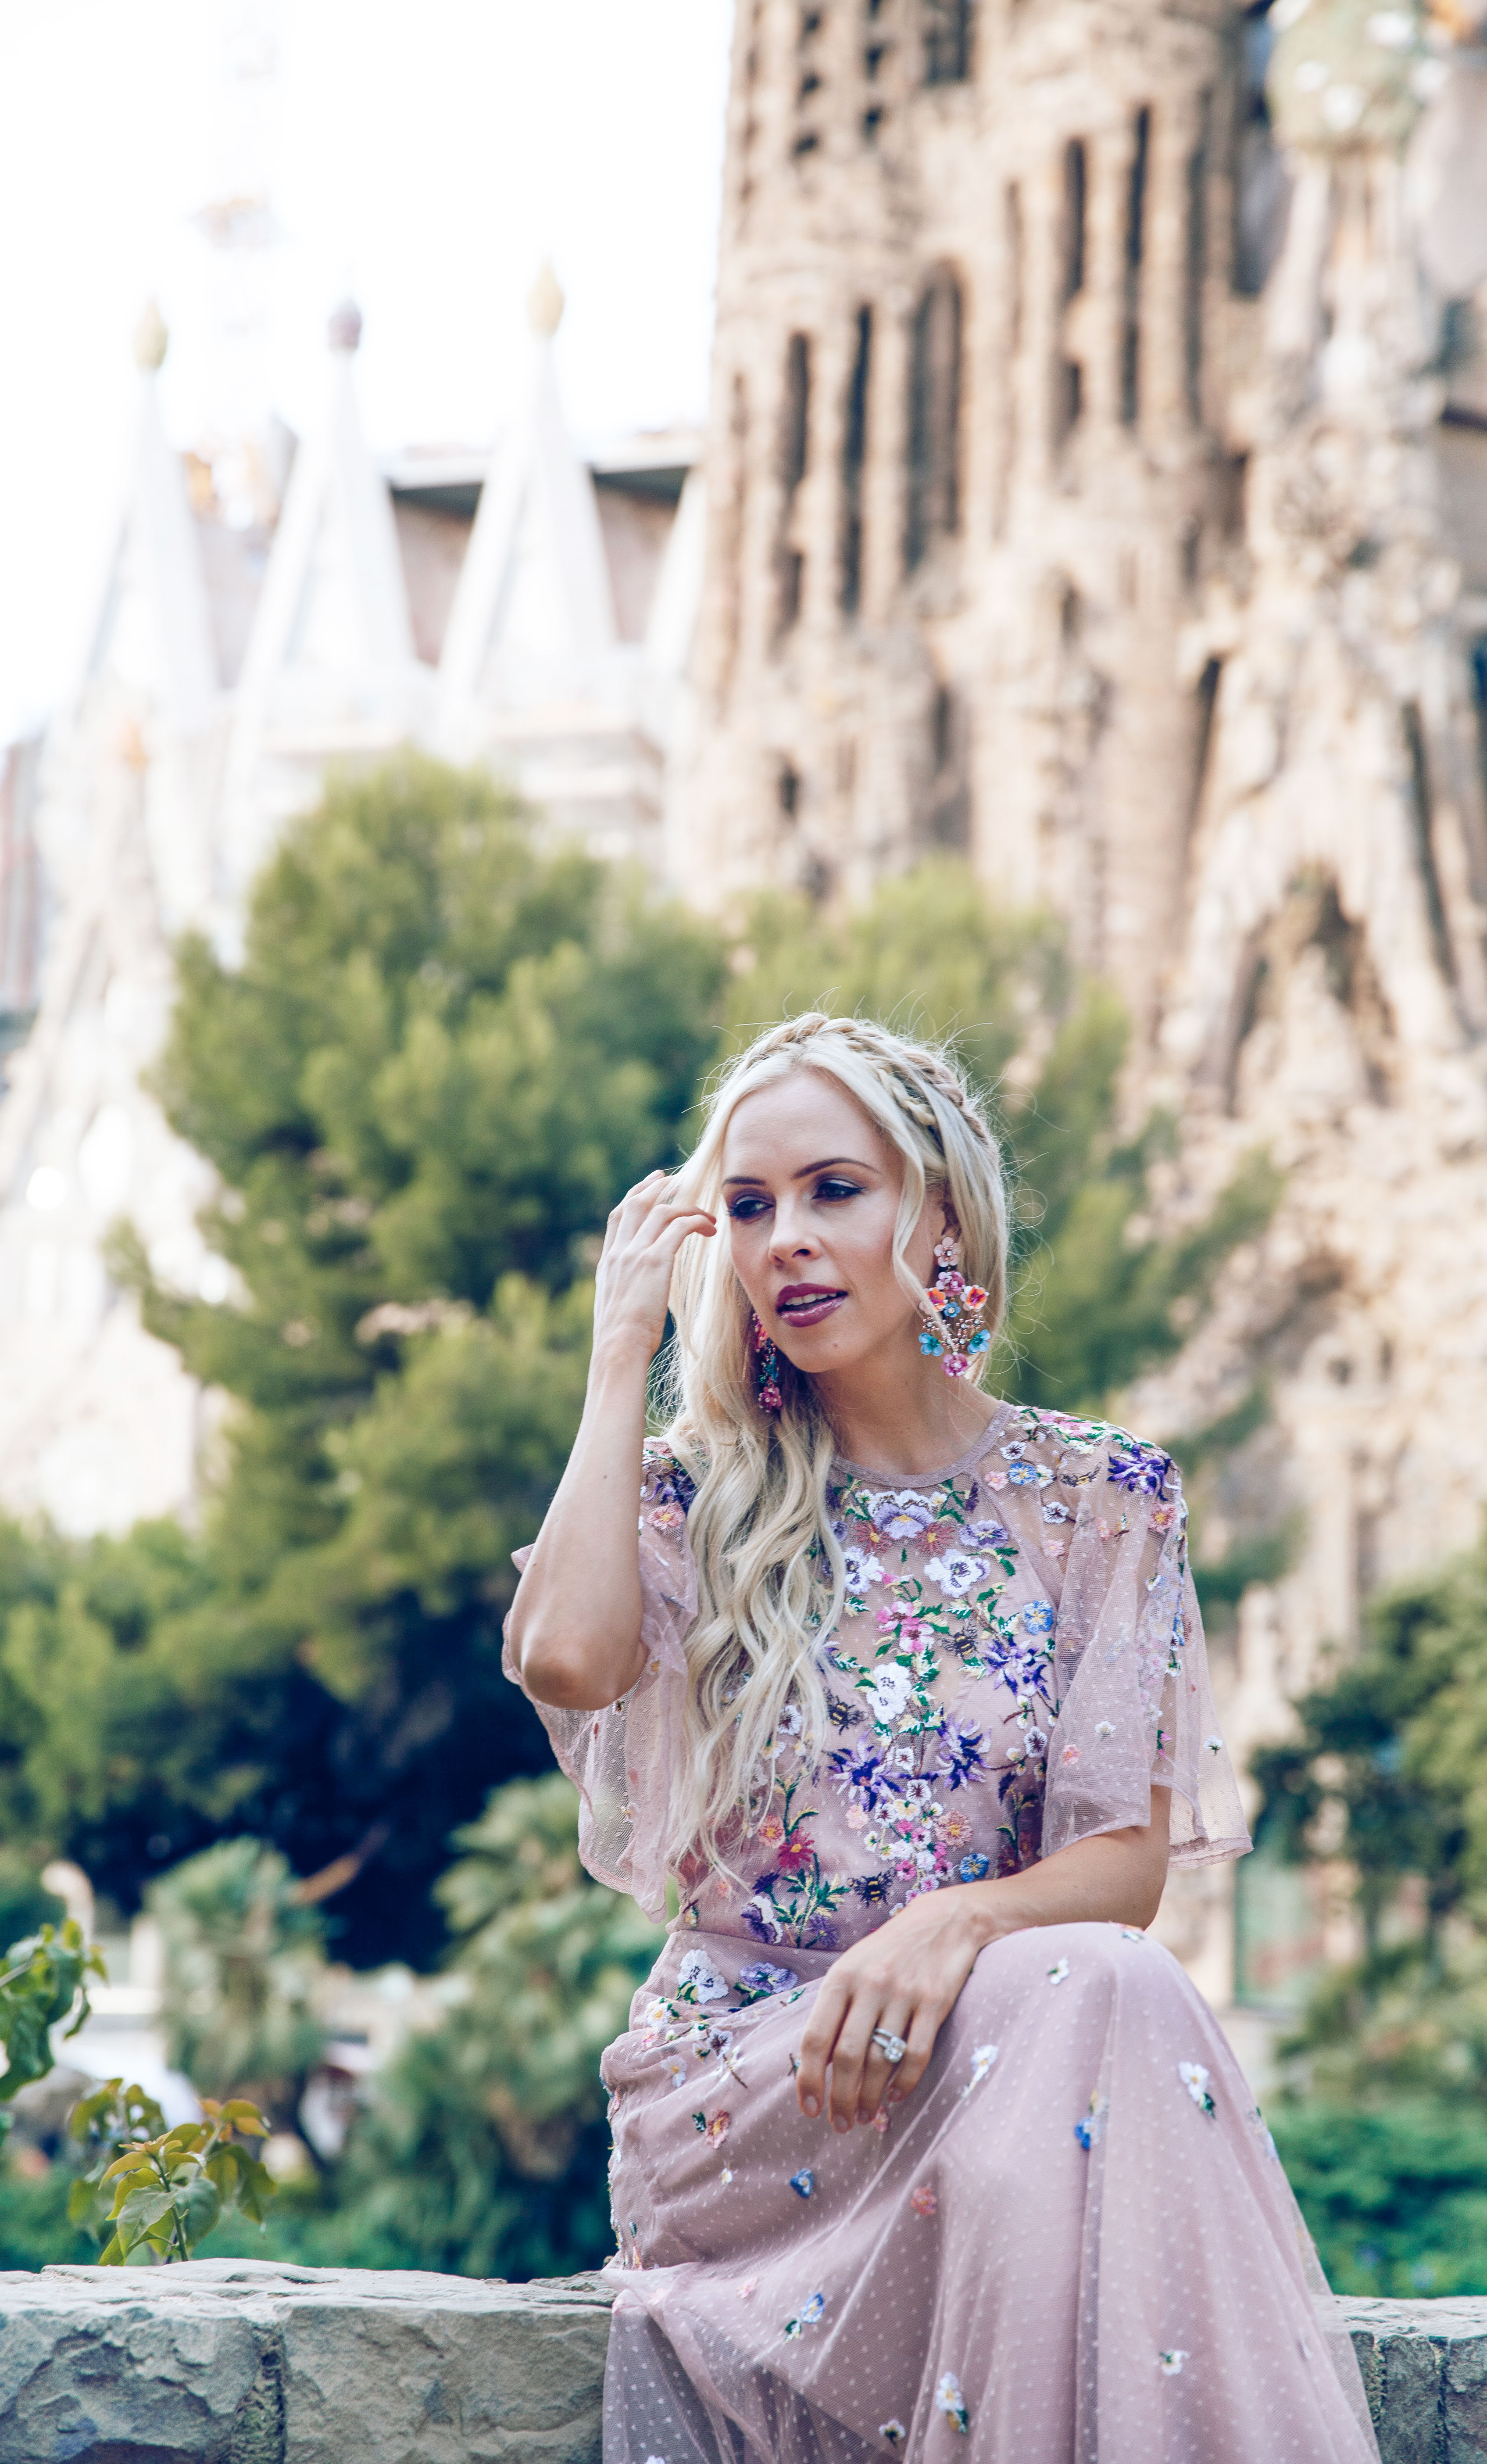 Barcelona La Sagrada Familia ASOS DESIGN Bridesmaid floral embroidered dobby mesh flutter sleeve maxi dress in barcelona  | ASOS floral embroidered maxi dress featured by top San Francisco fashion blog, Lombard and Fifth: image of a blonde woman wearing a floral maxi dress at the Colosseum in Rome